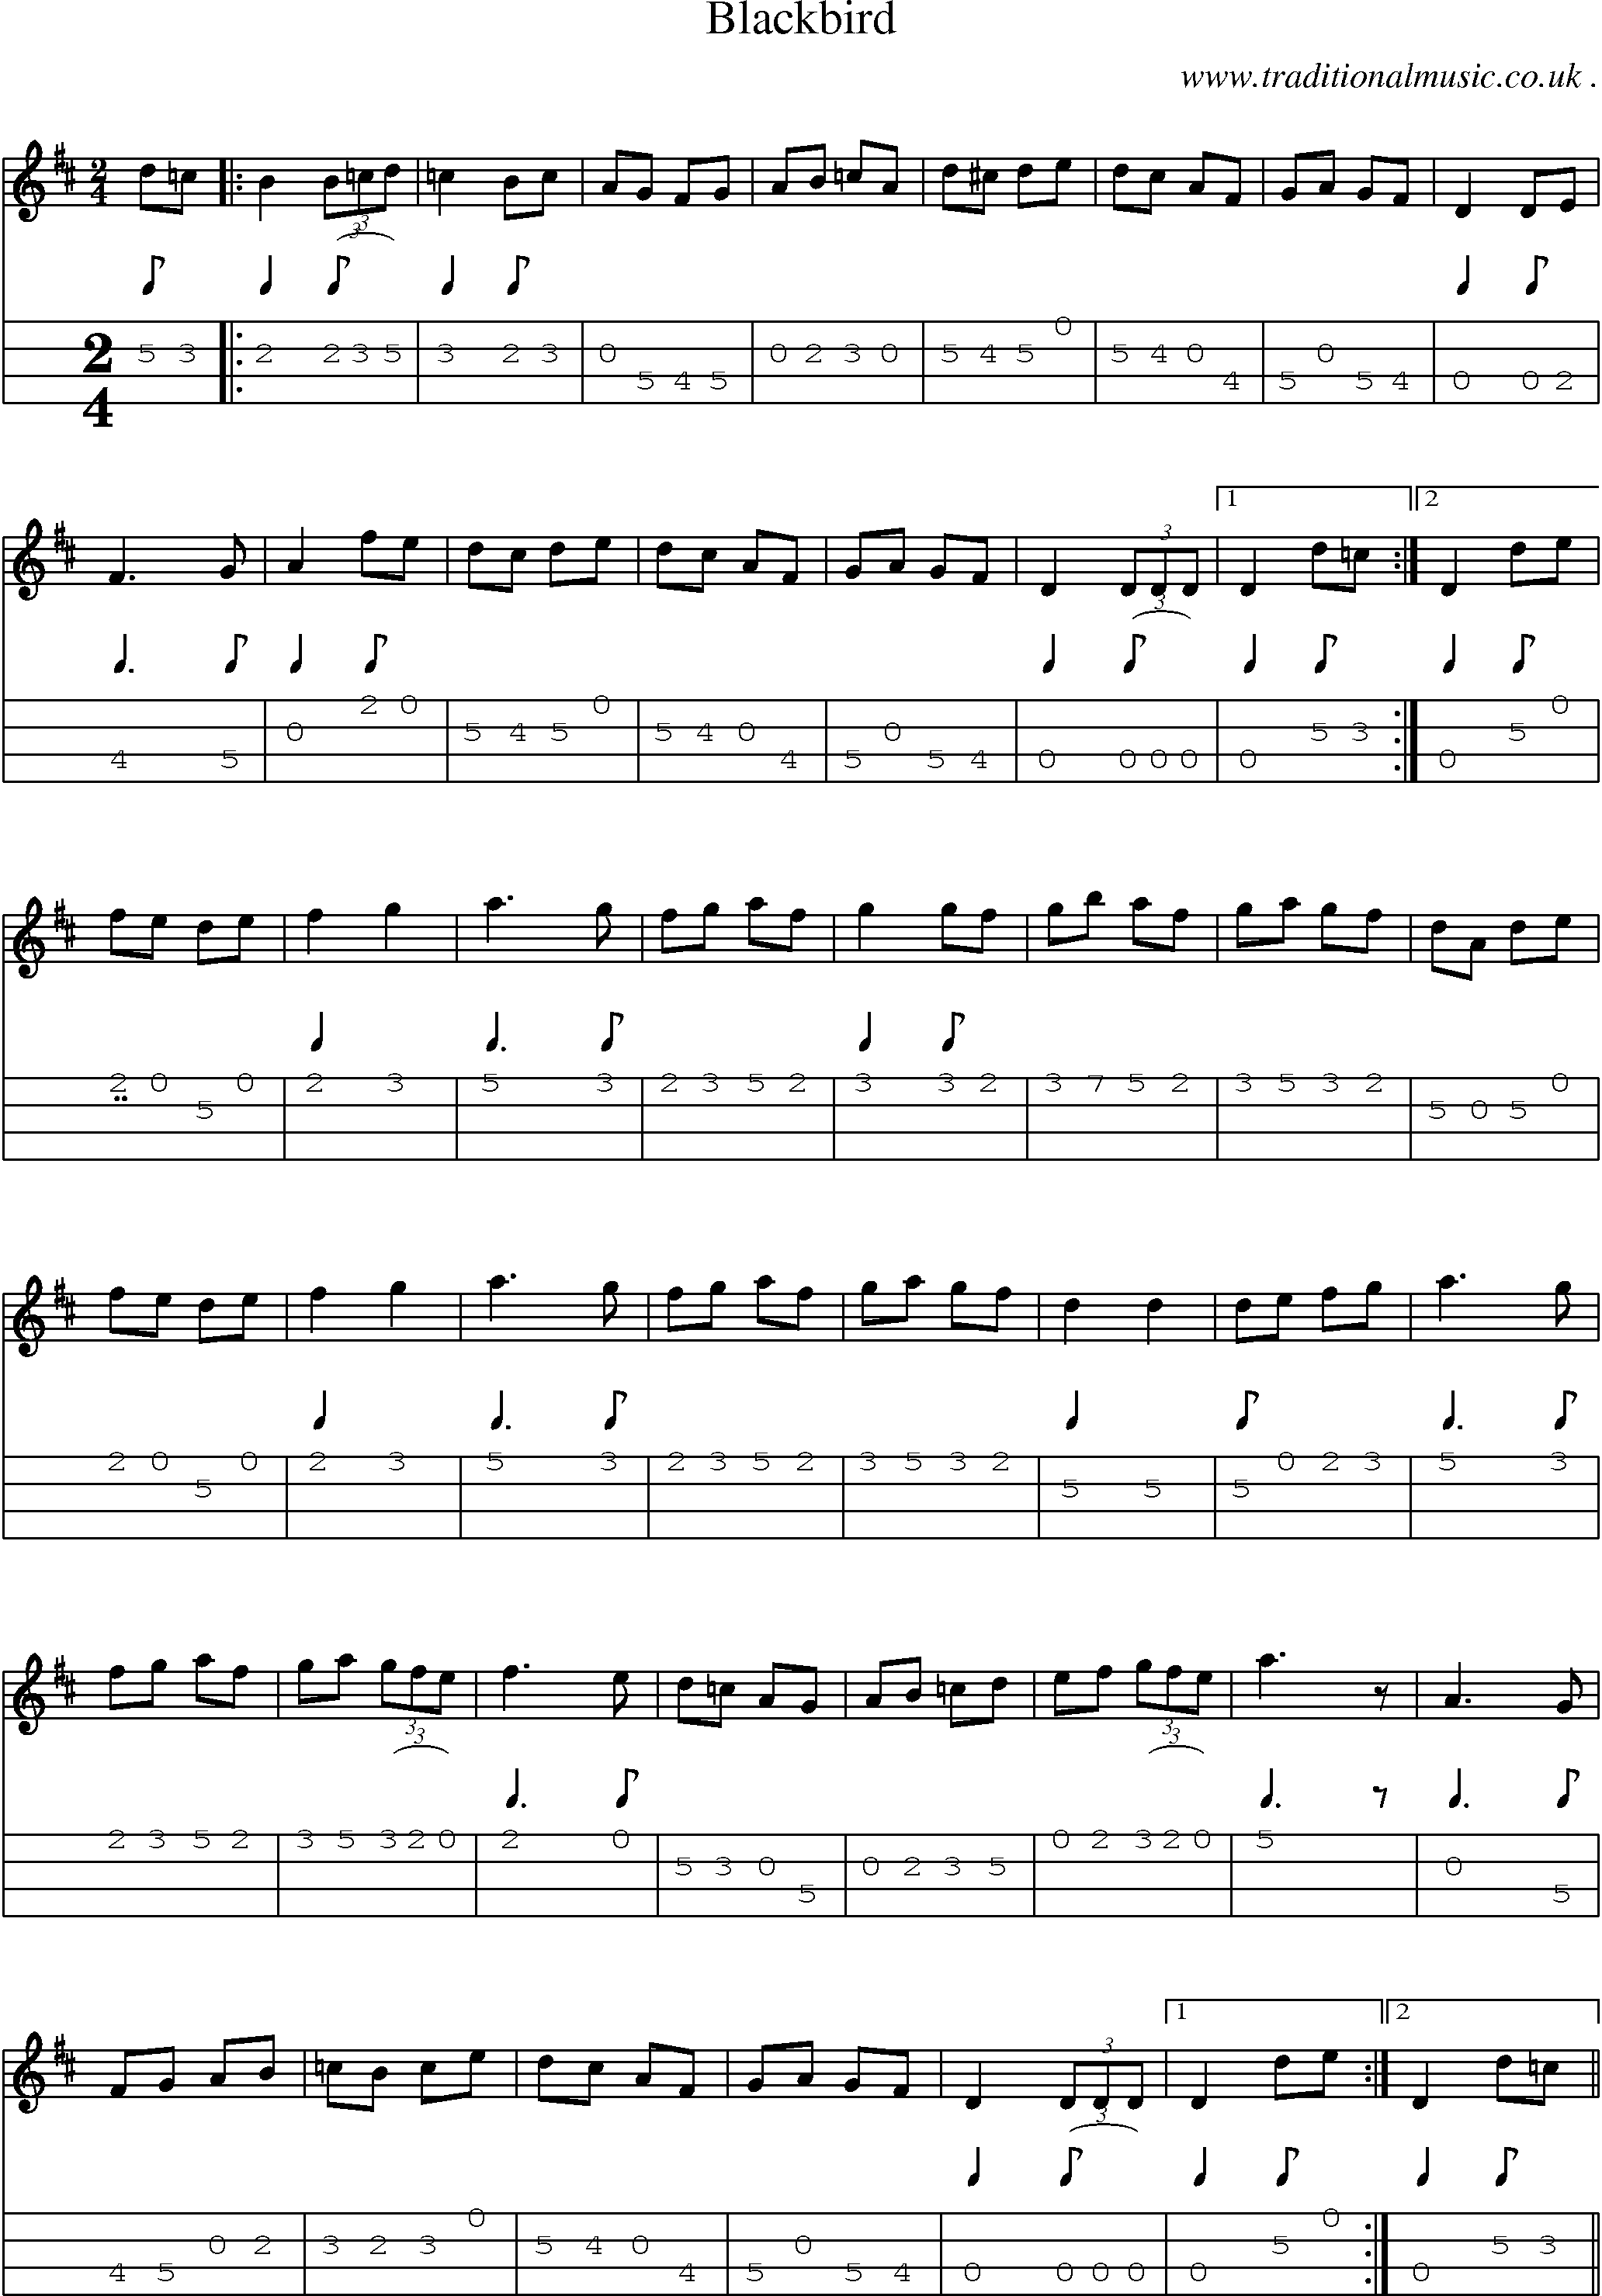 Mandolin tabs blackbird music sheets chords tablature and song folk and traditional music sheet music mandolin tab midi mp3 and pdf for blackbird hexwebz Images